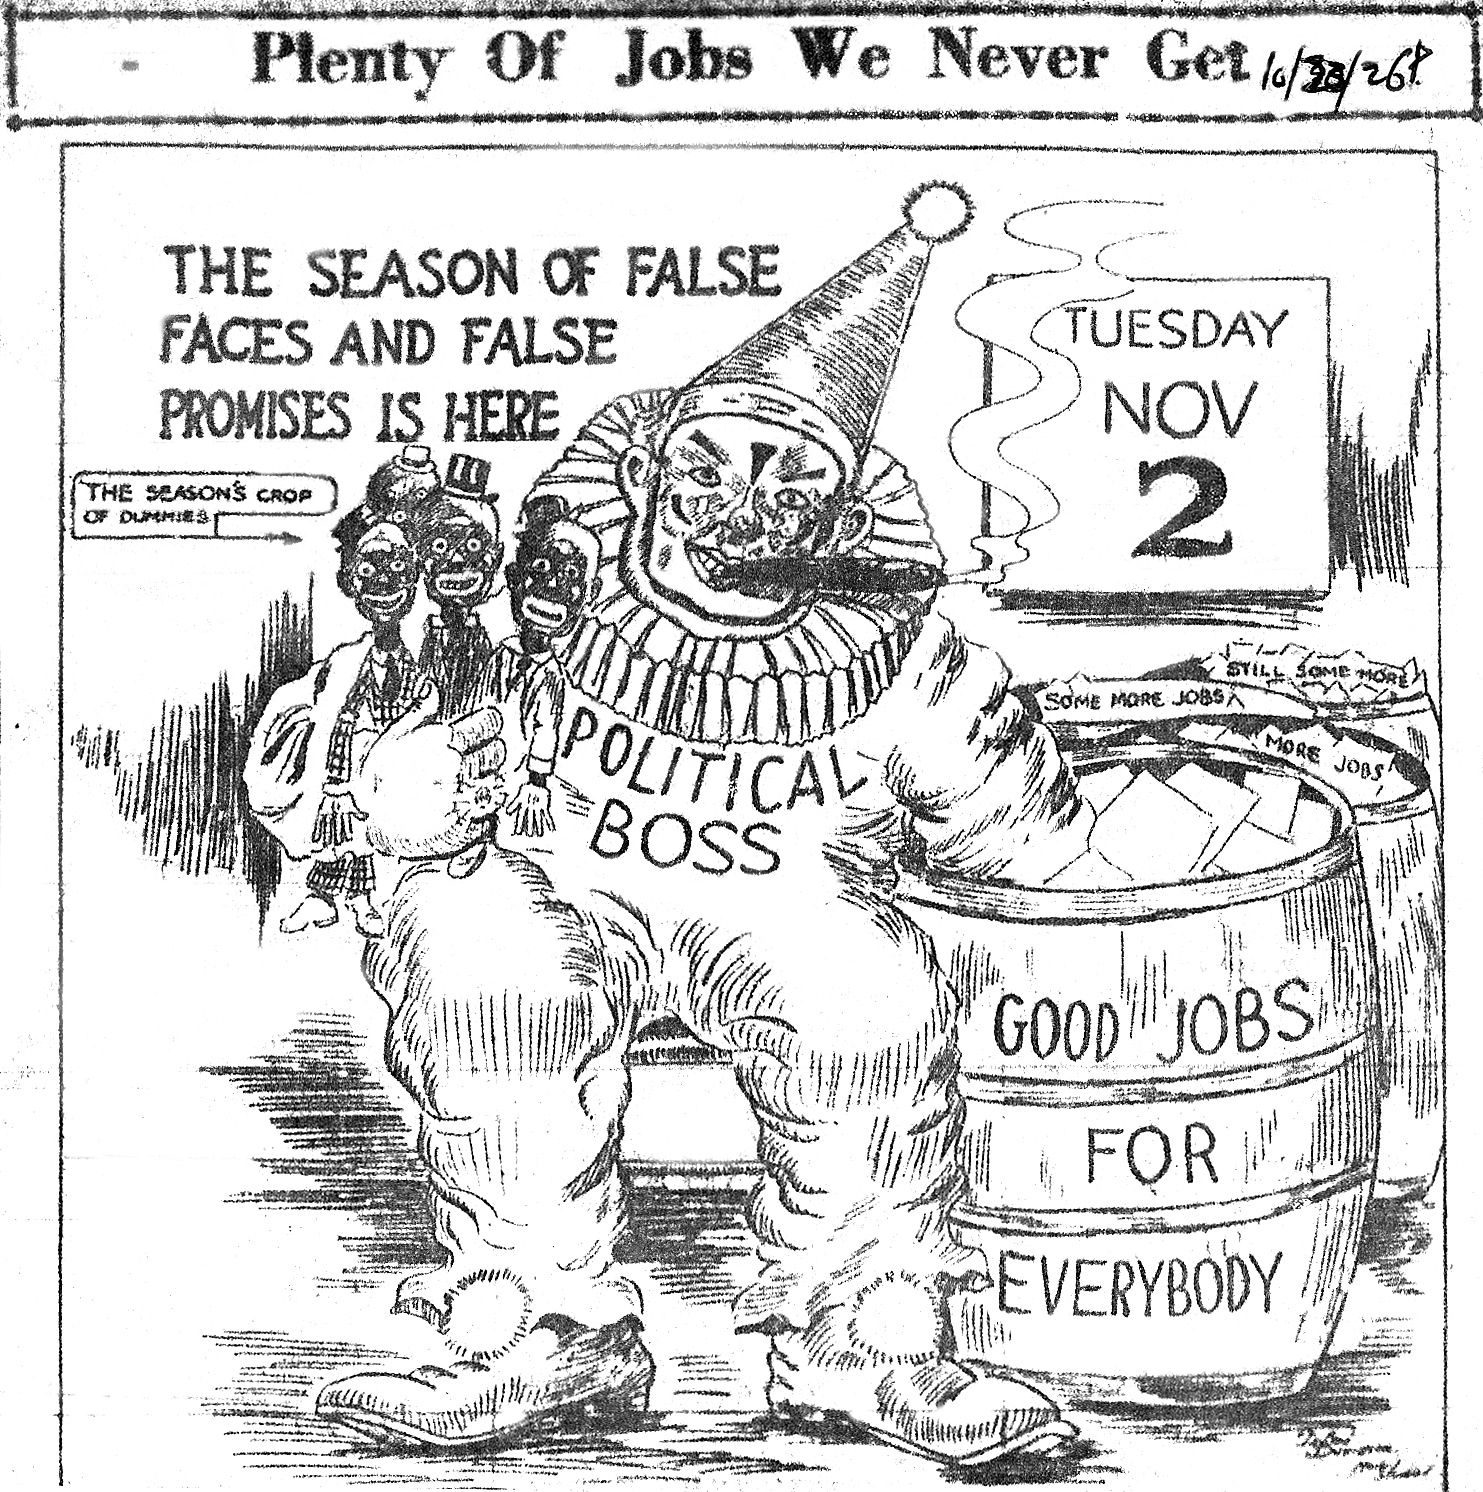 editorial cartoon from 1920s topsimages 1920s Newspaper Cars a clown with political boss across the front of his costume smoking a cigar 1483x1492